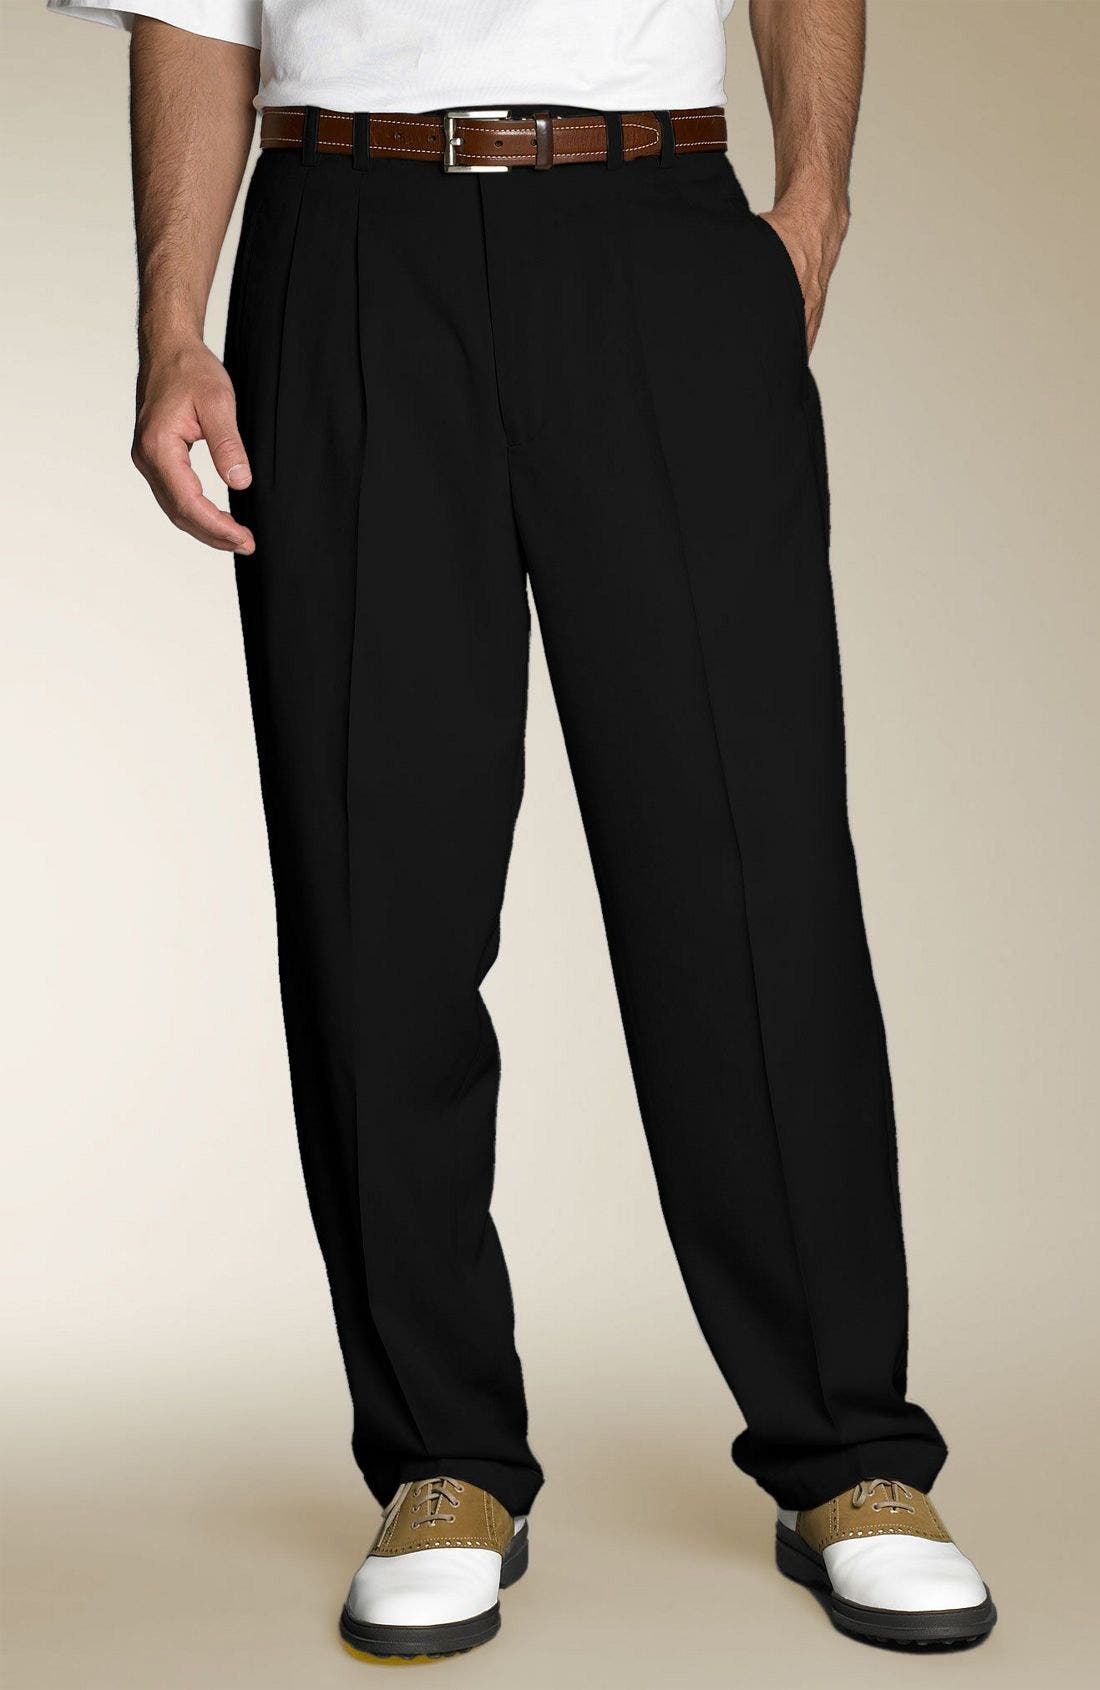 Alternate Image 1 Selected - Cutter & Buck Gabardine Microfiber Cuff Golf Trousers